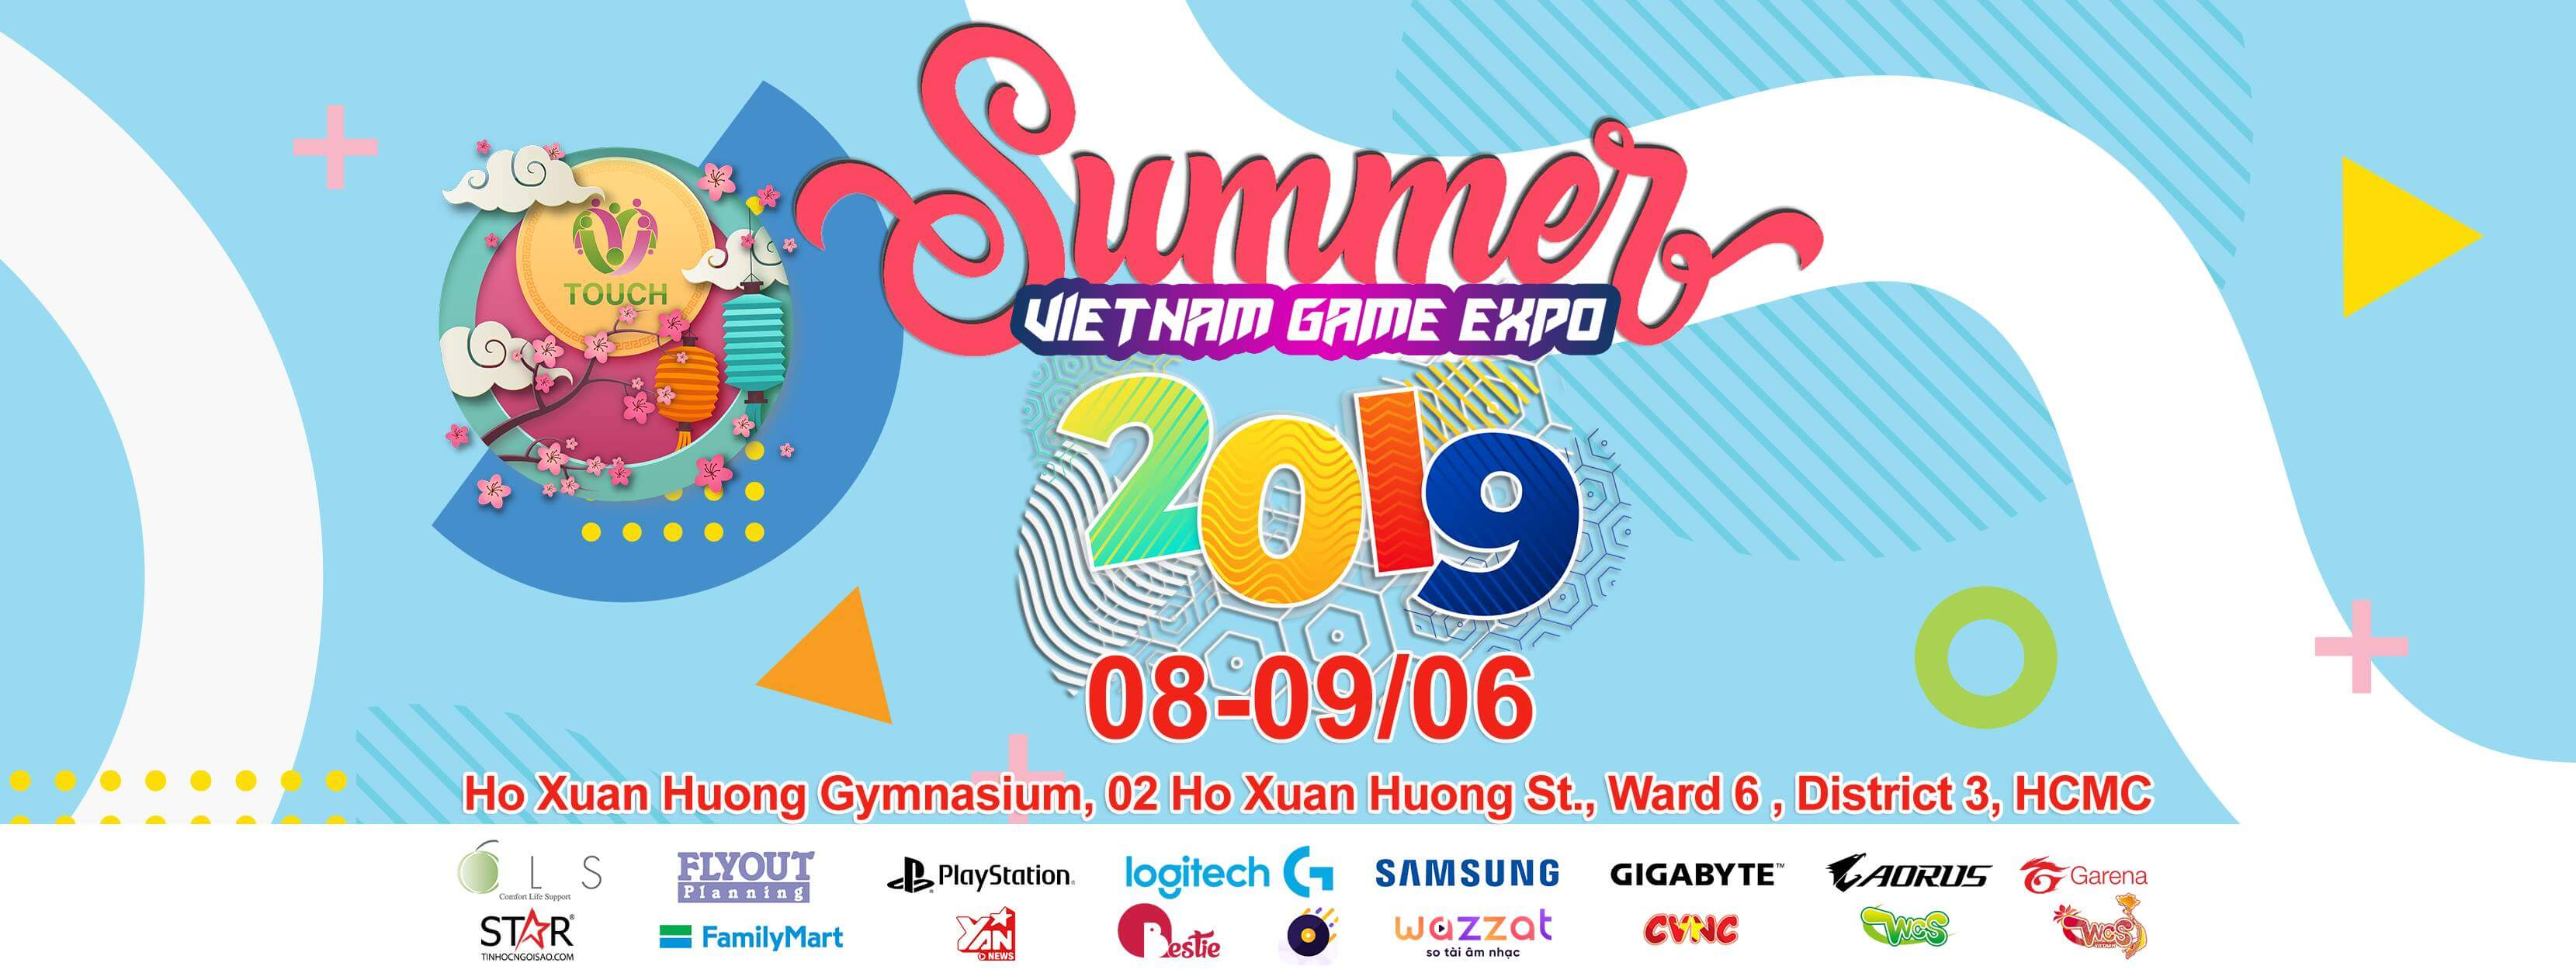 Touch Summer - Vietnam Game Expo 2019